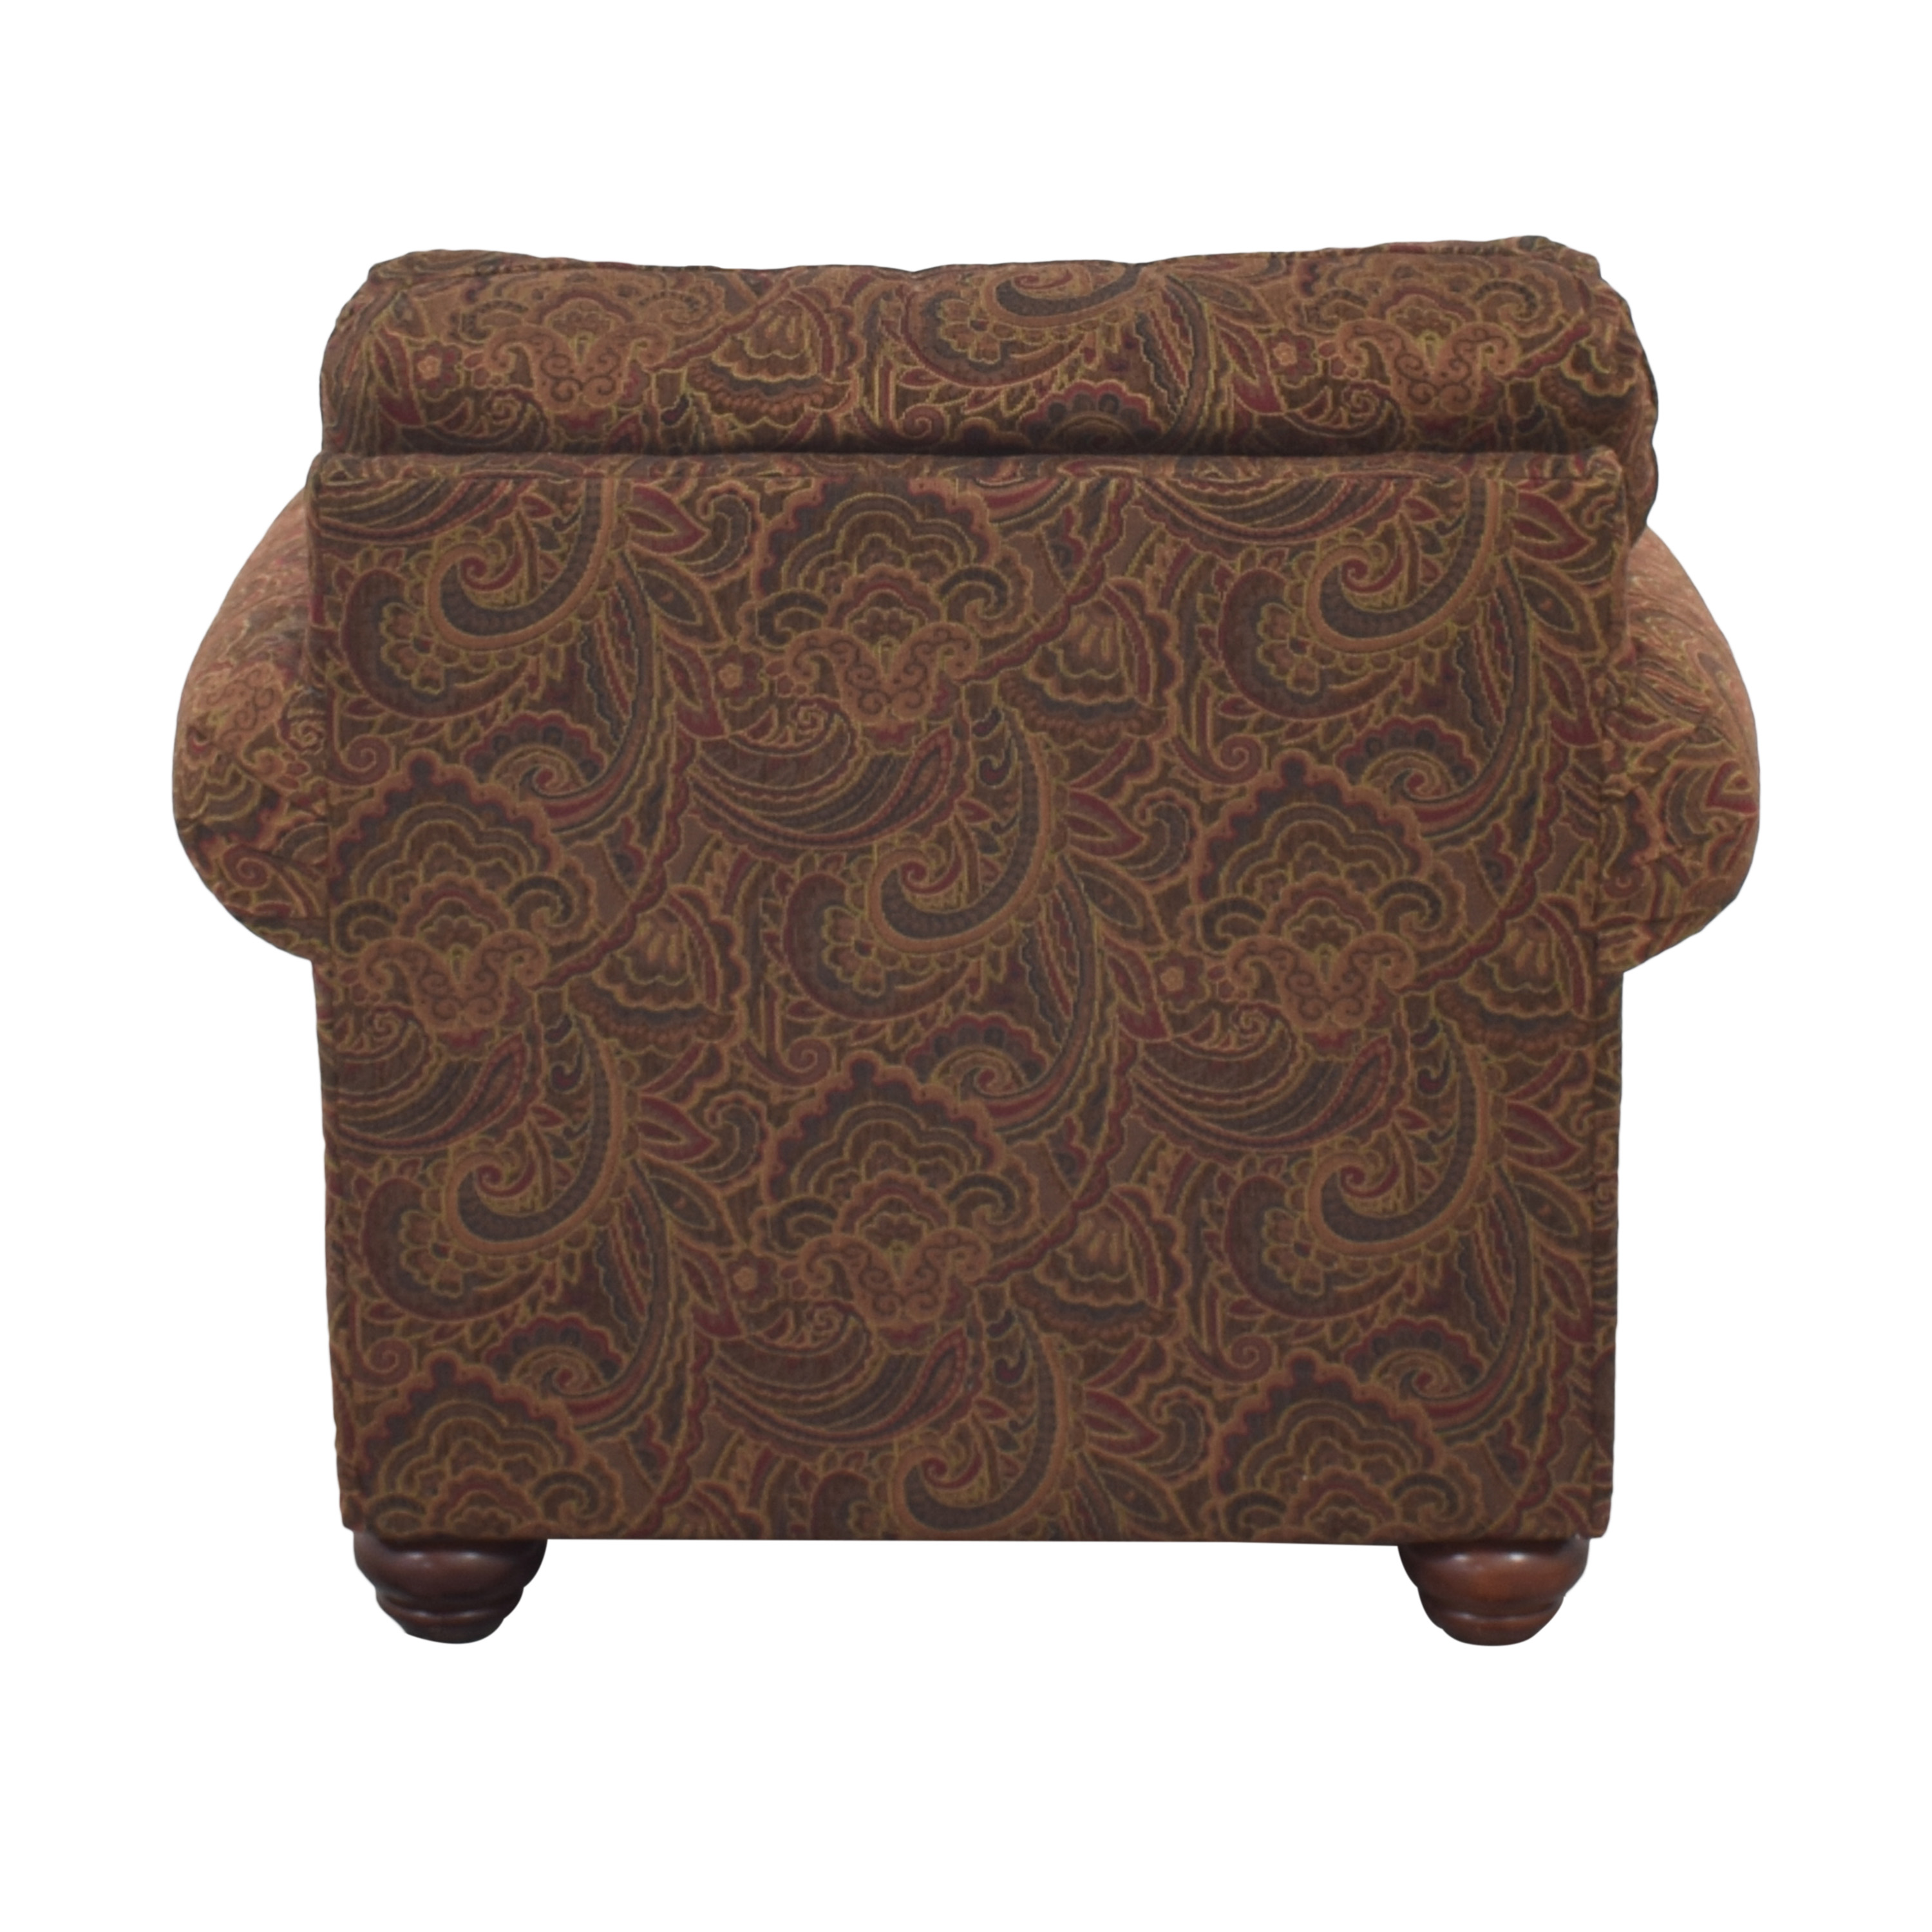 Broyhill Furniture Broyhill Furniture Roll Arm Accent Chair and Ottoman Accent Chairs